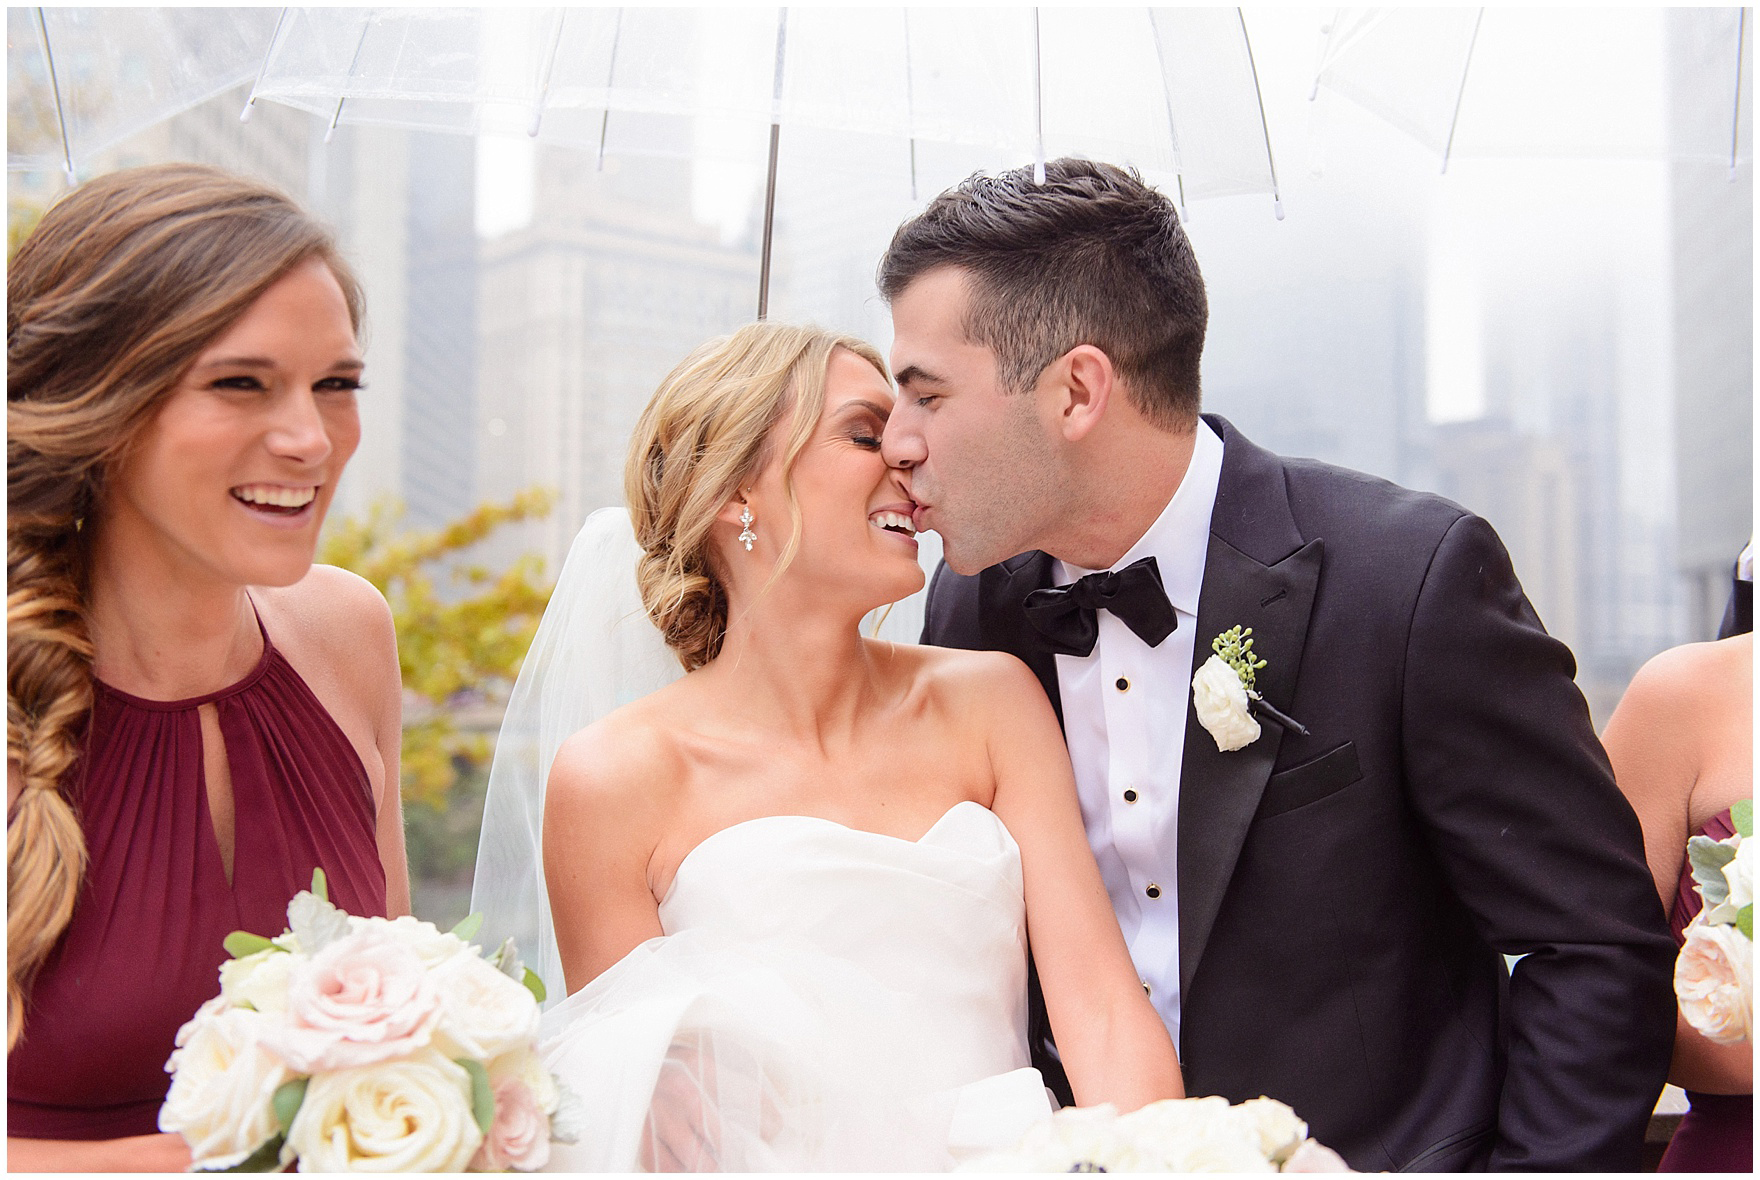 The bride and groom joke and he kisses her on the nose downtown Chicago during a St. Clement Germania Place Chicago wedding.